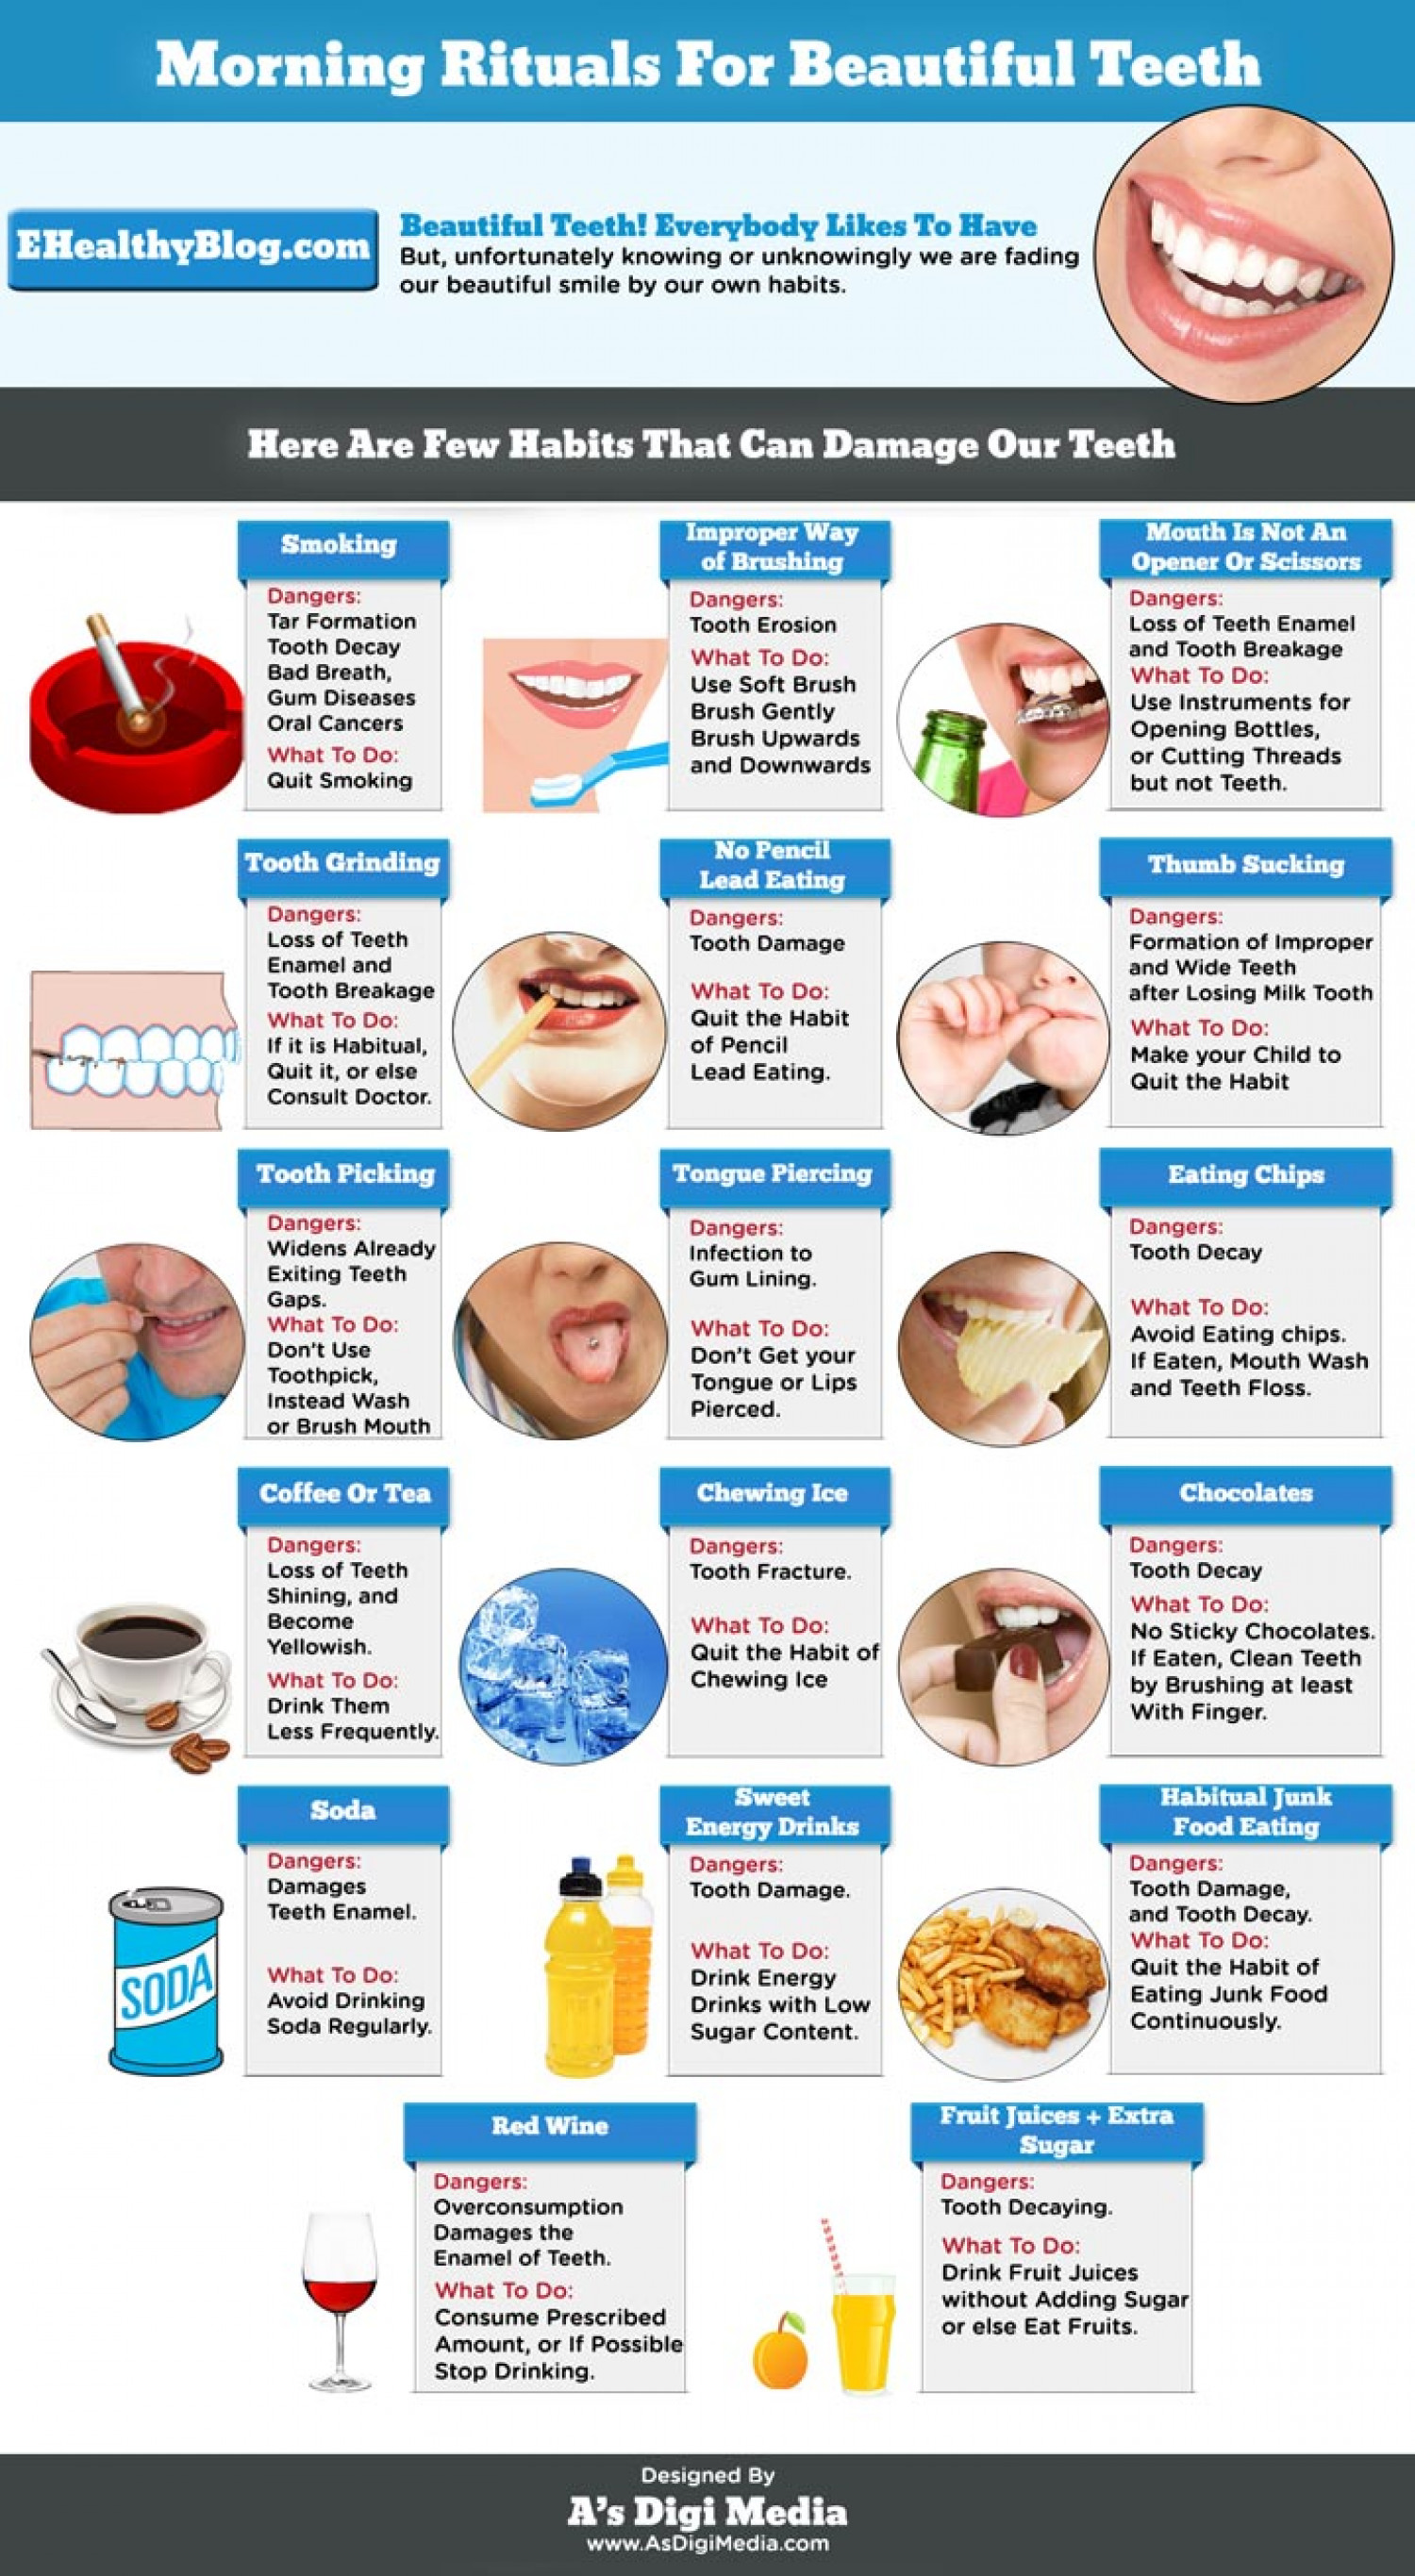 Morning Rituals For Beautiful Teeth Infographic